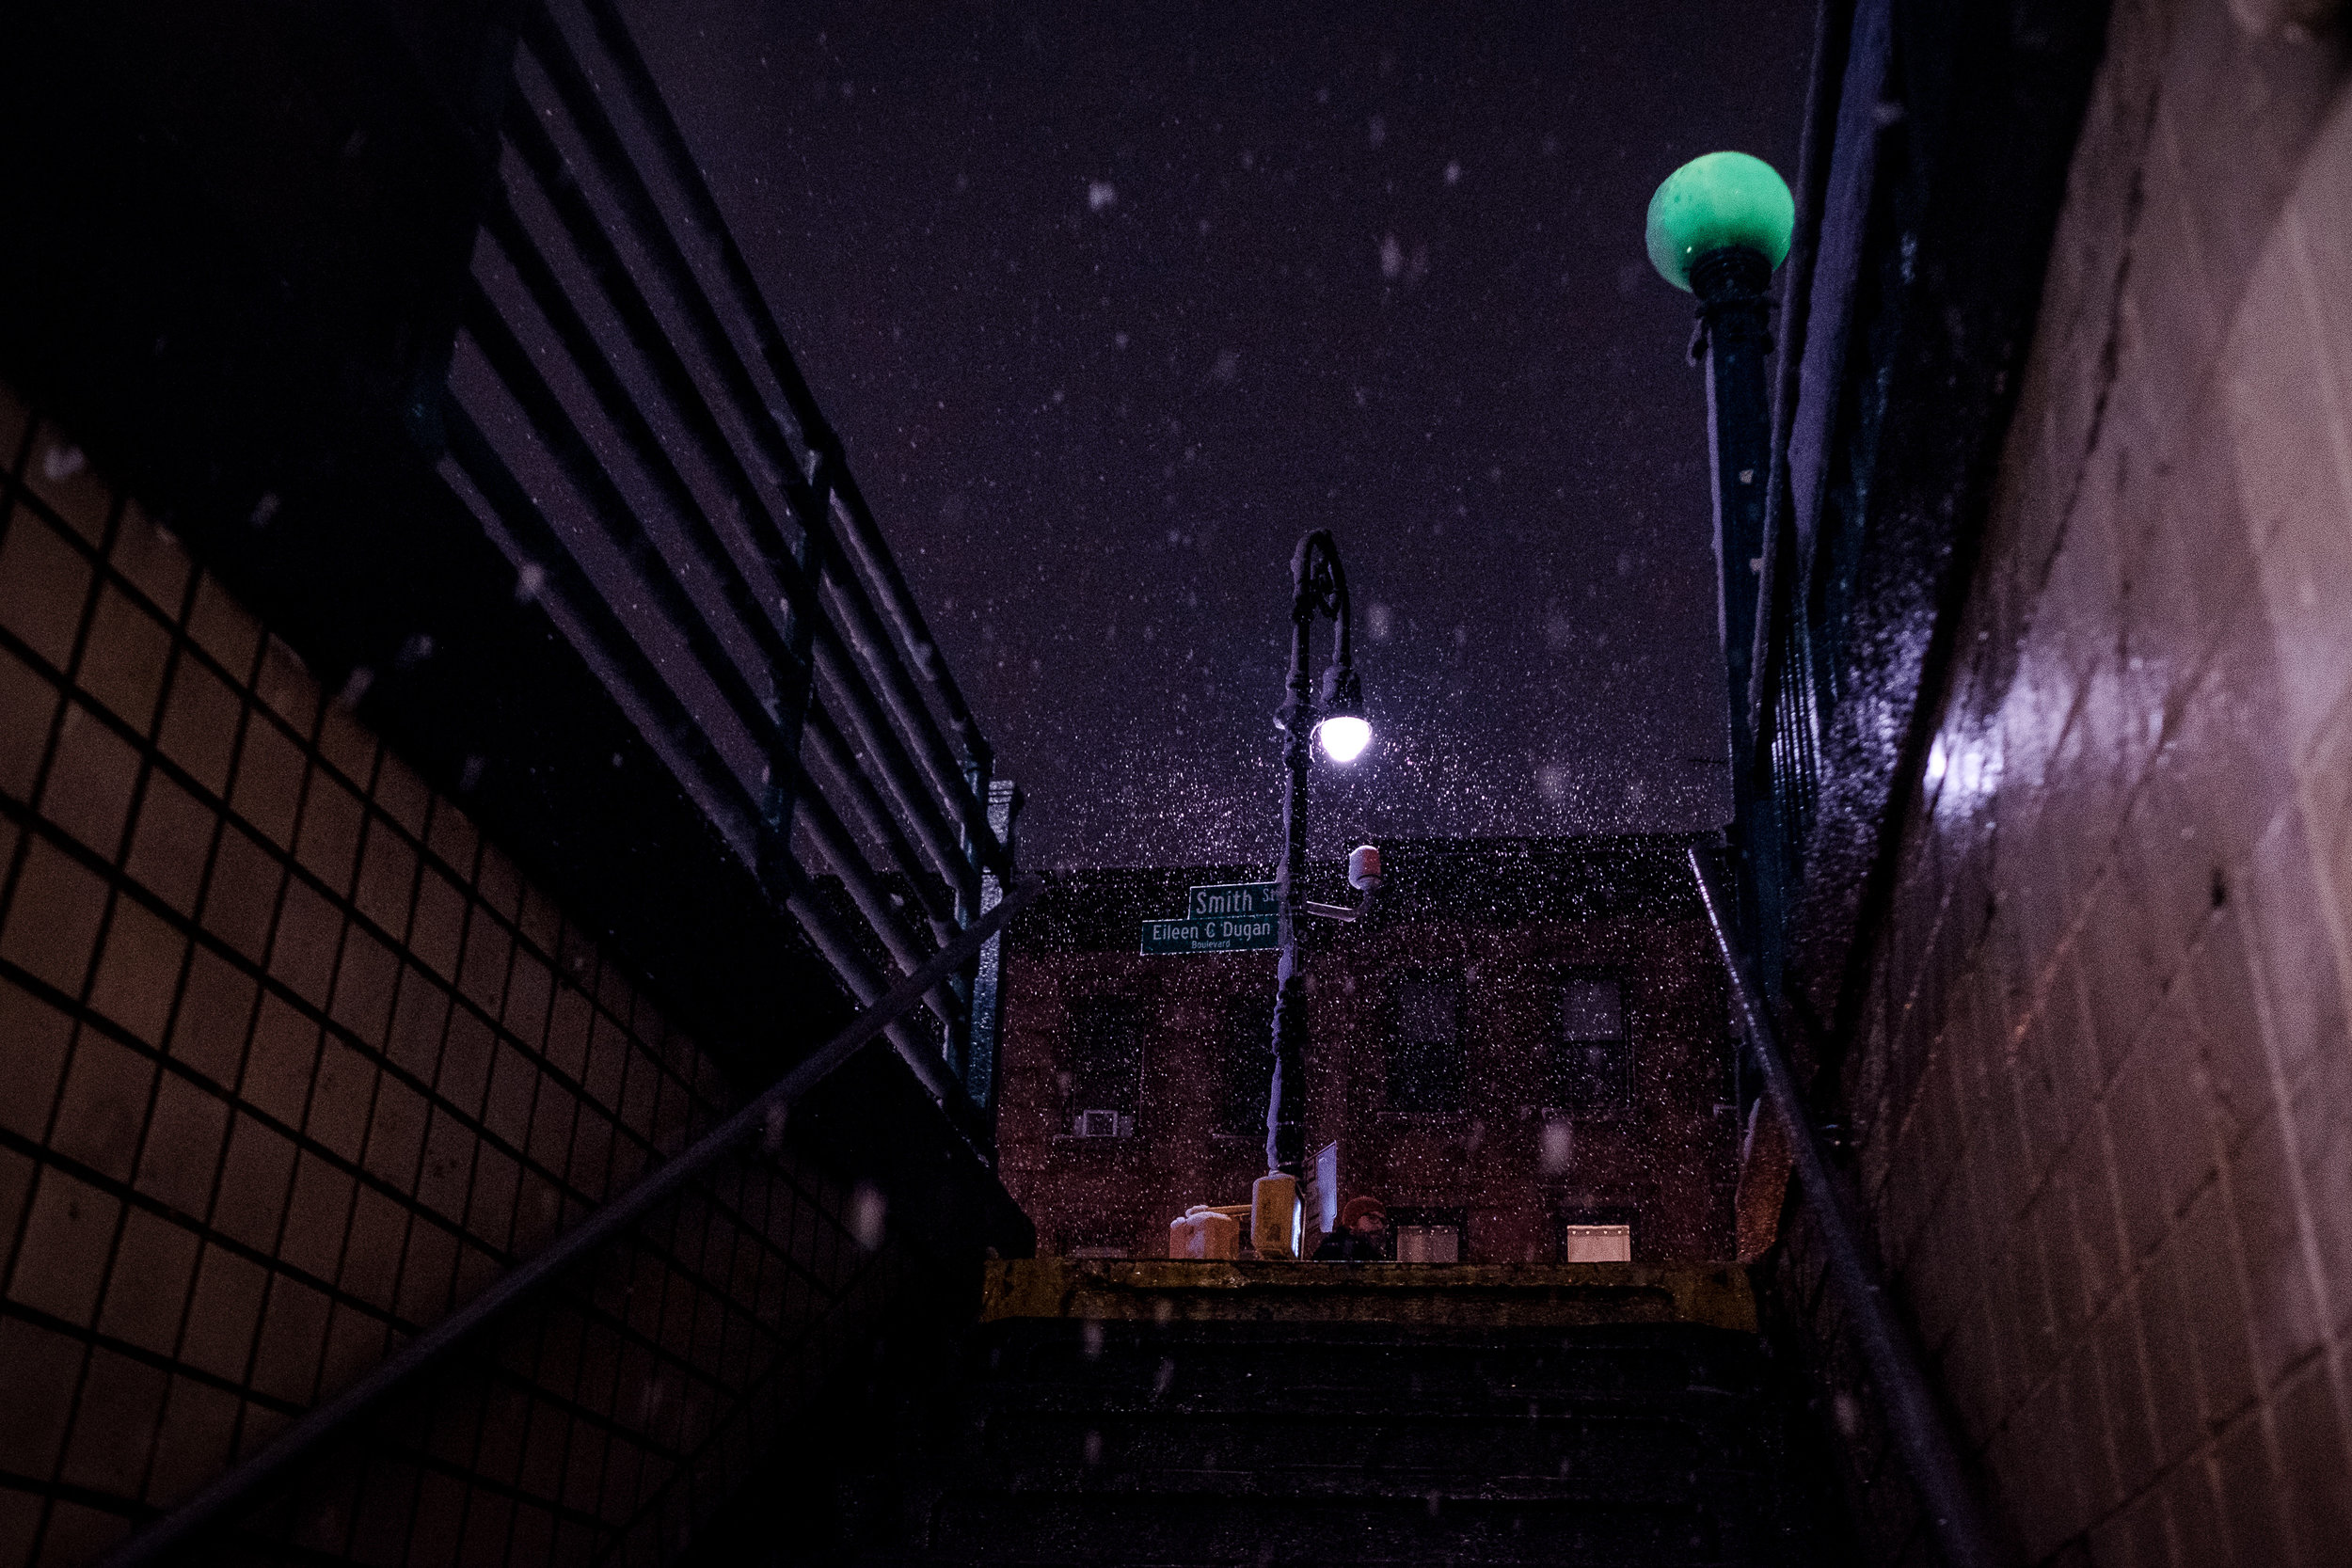 """Carroll Street Station"" Carroll Gardens, Brooklyn Fujifilm X Pro2, 23mm, f/2.8, 1/220 sec, ISO 6400    I see this view of the exit from the Carroll Street subway station just about every day. It's totally unremarkable. But add some giant fluffy snowflakes and suddenly it's a scene from a movie."